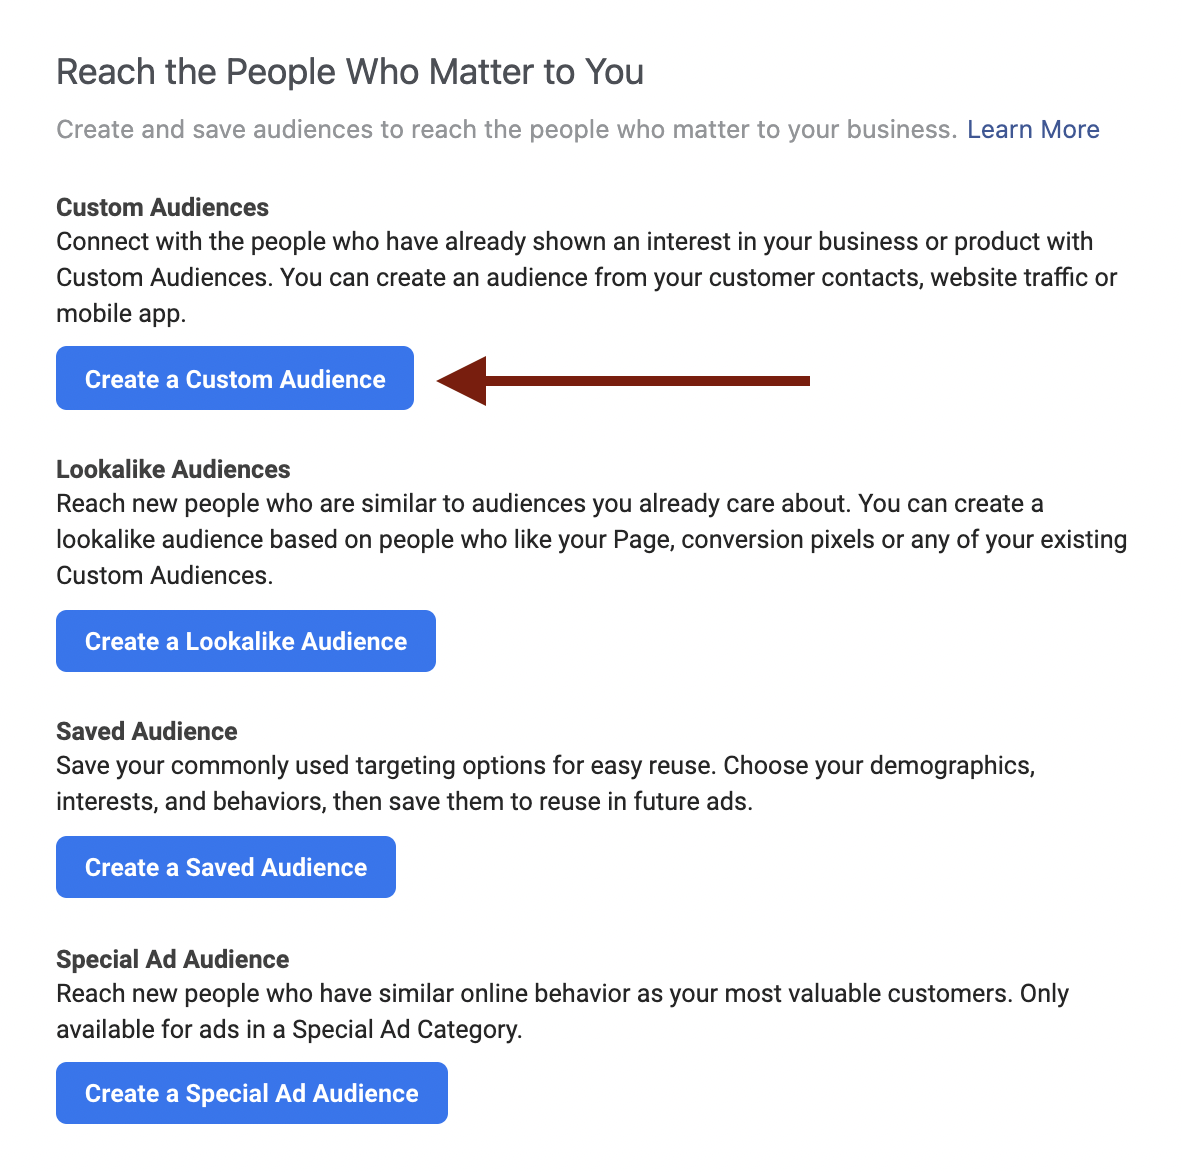 How to Create a Custom Audience in Facebook